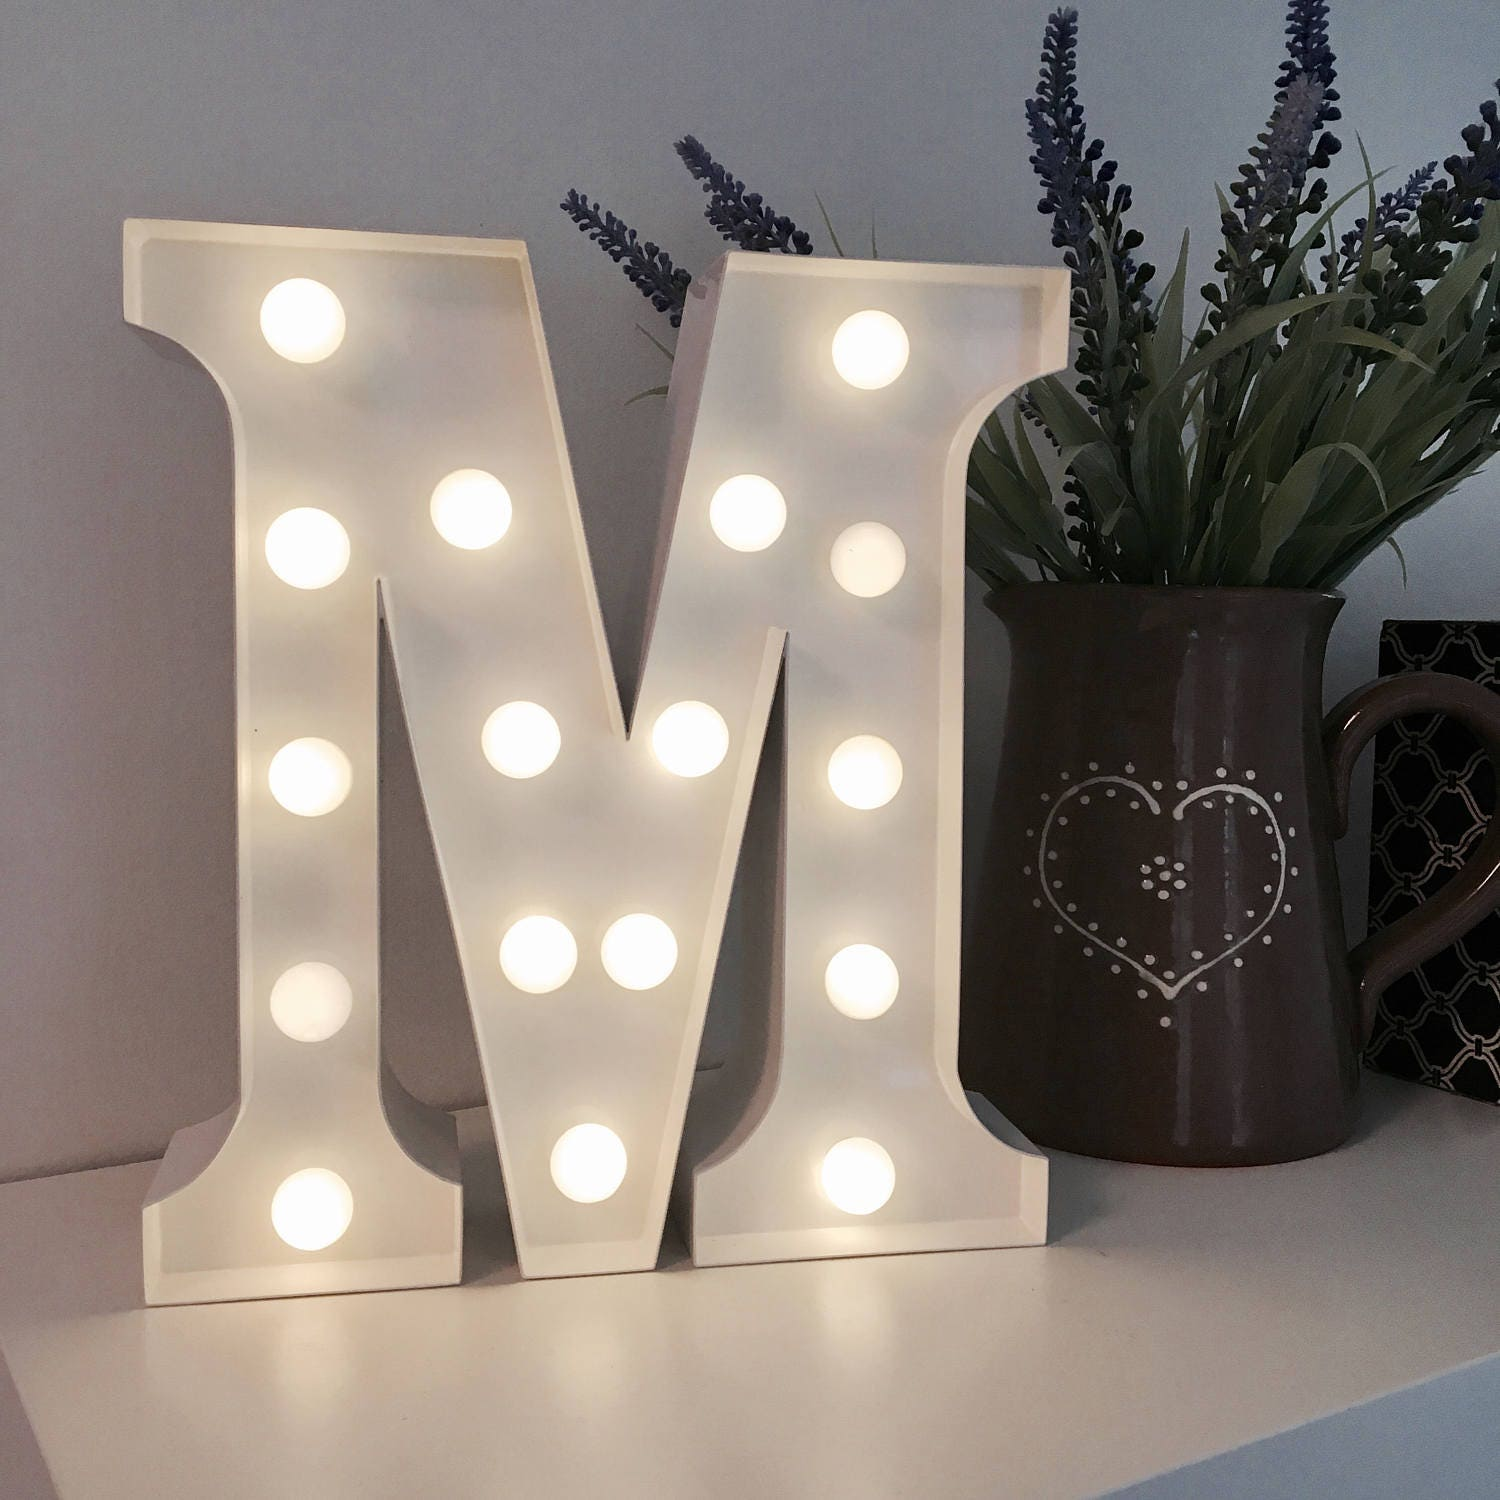 marquee light up letters vintage carnival style marquee light light up letter m 23581 | il fullxfull.1222361719 rmow